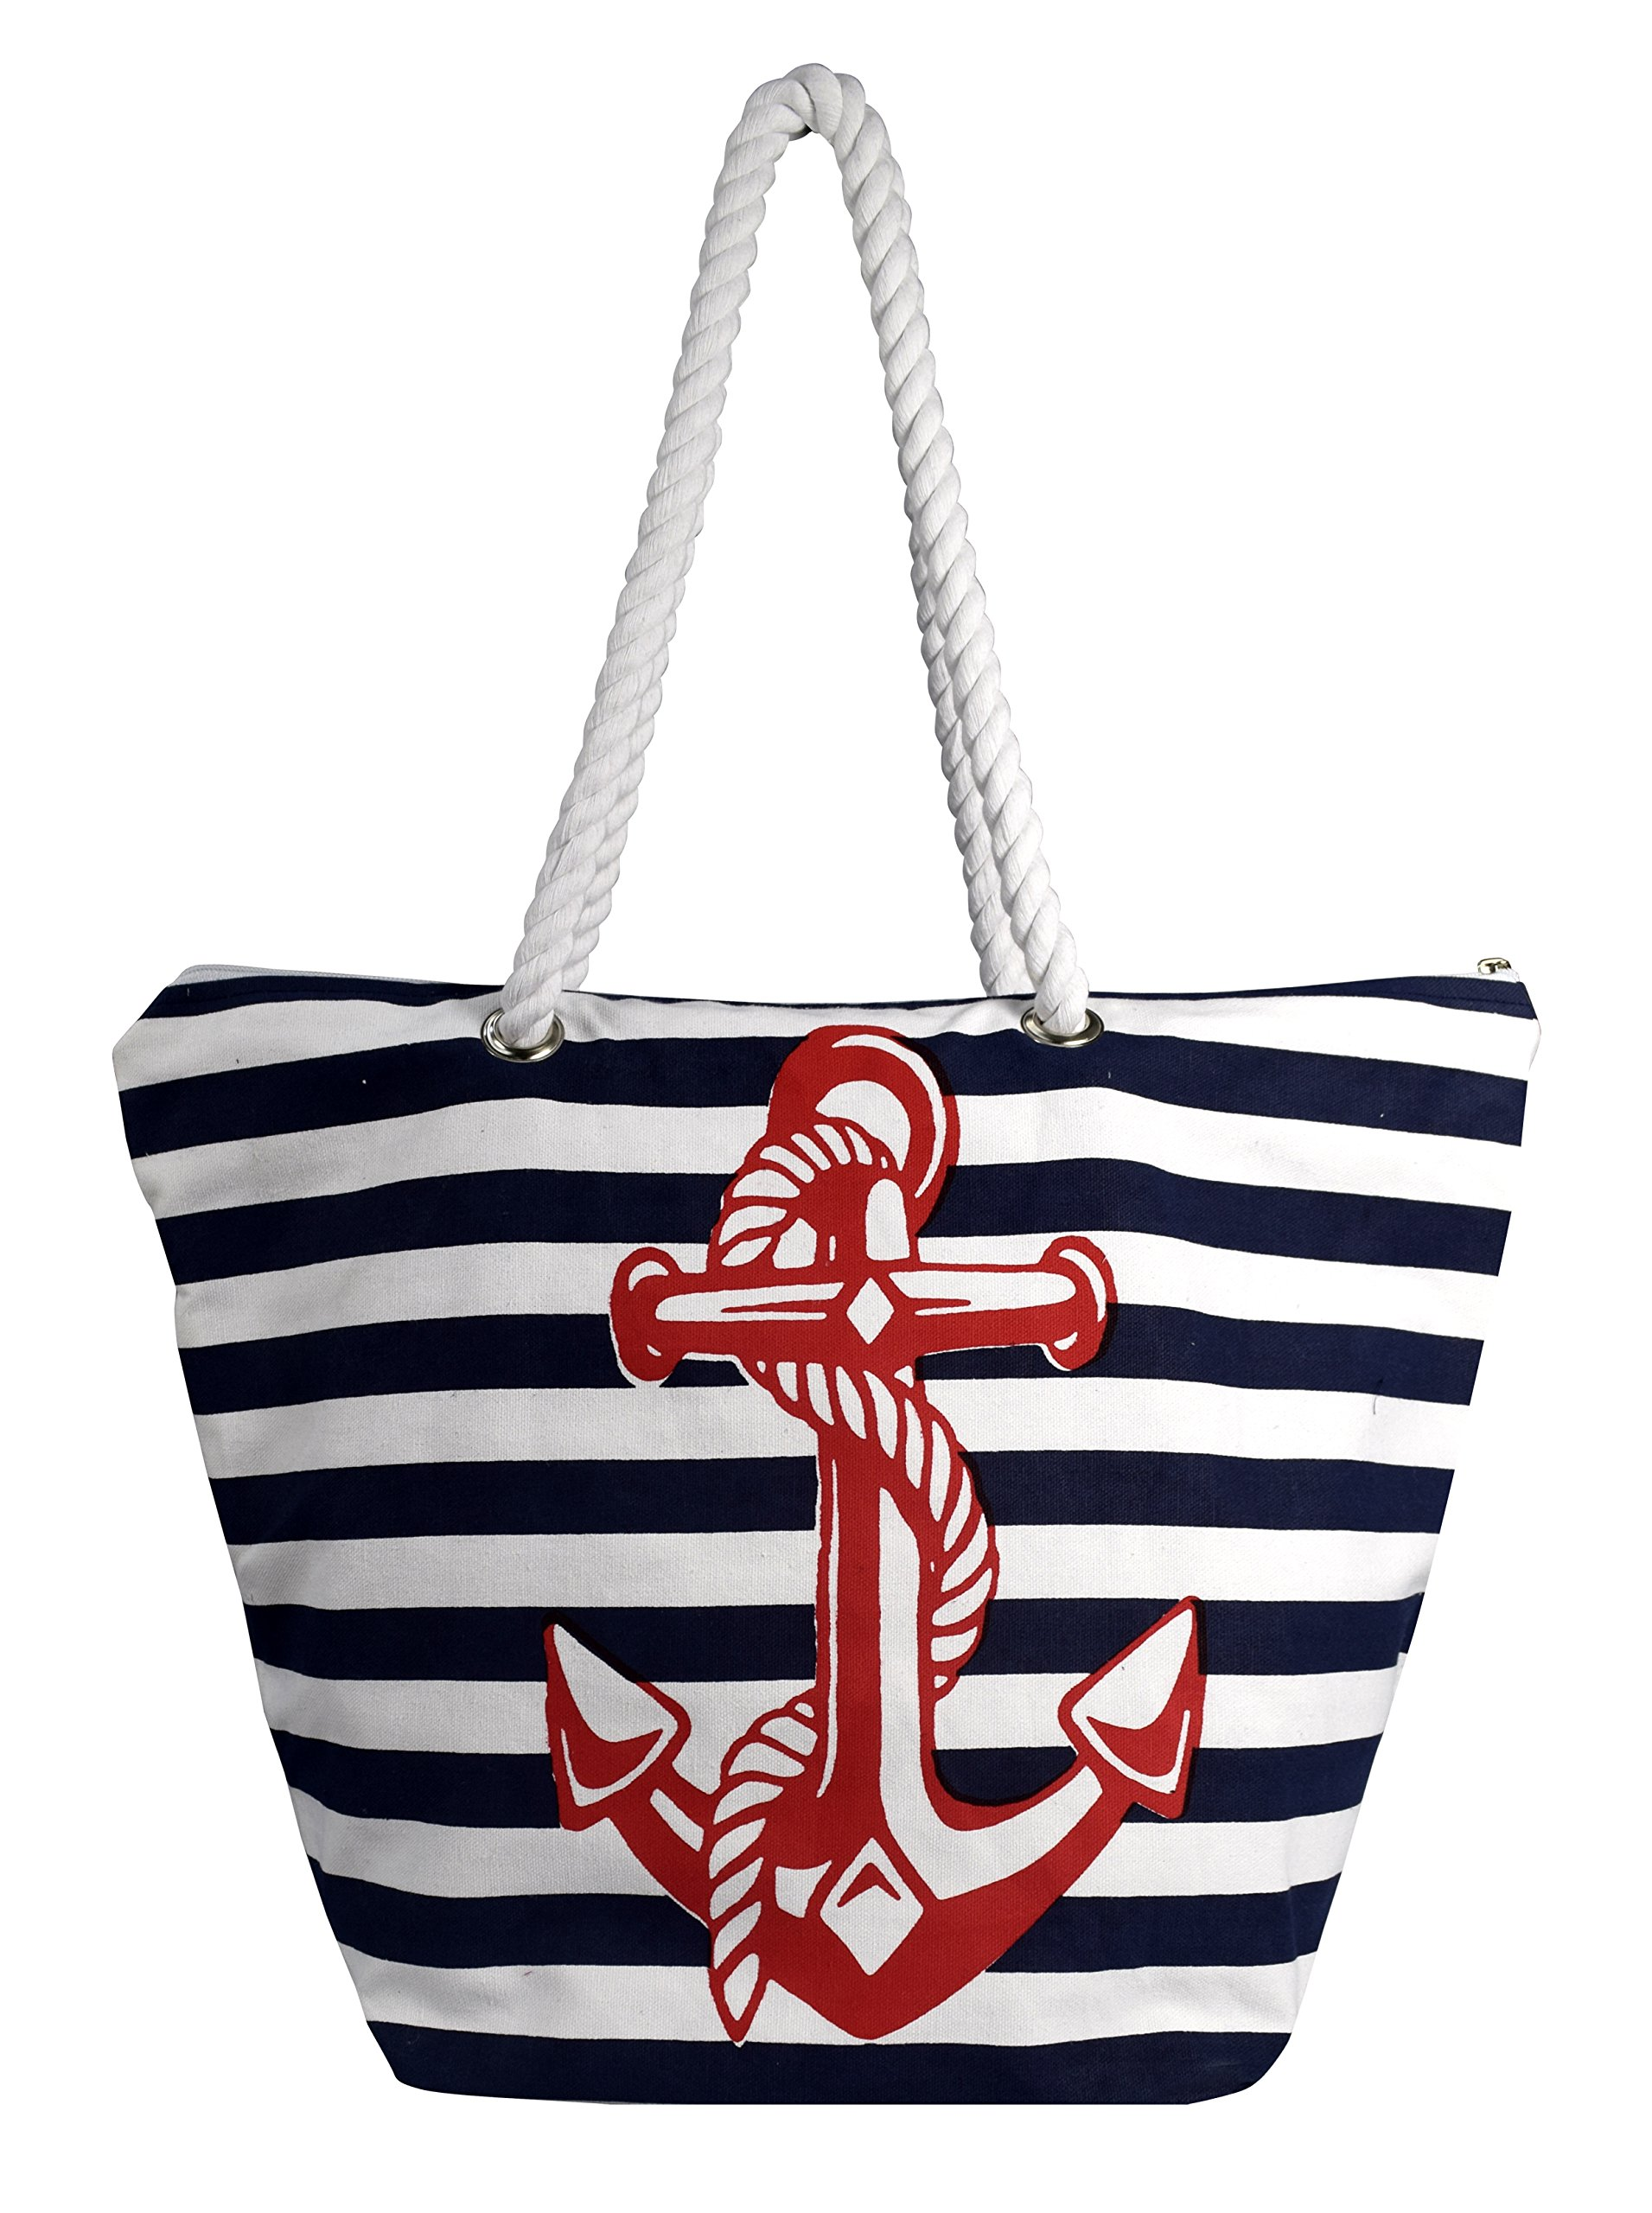 Peach Couture Nautical Anchor Print Bold Stripe Summer Purse Beach Bag Totes (Onesize, Red Blue Anchor)